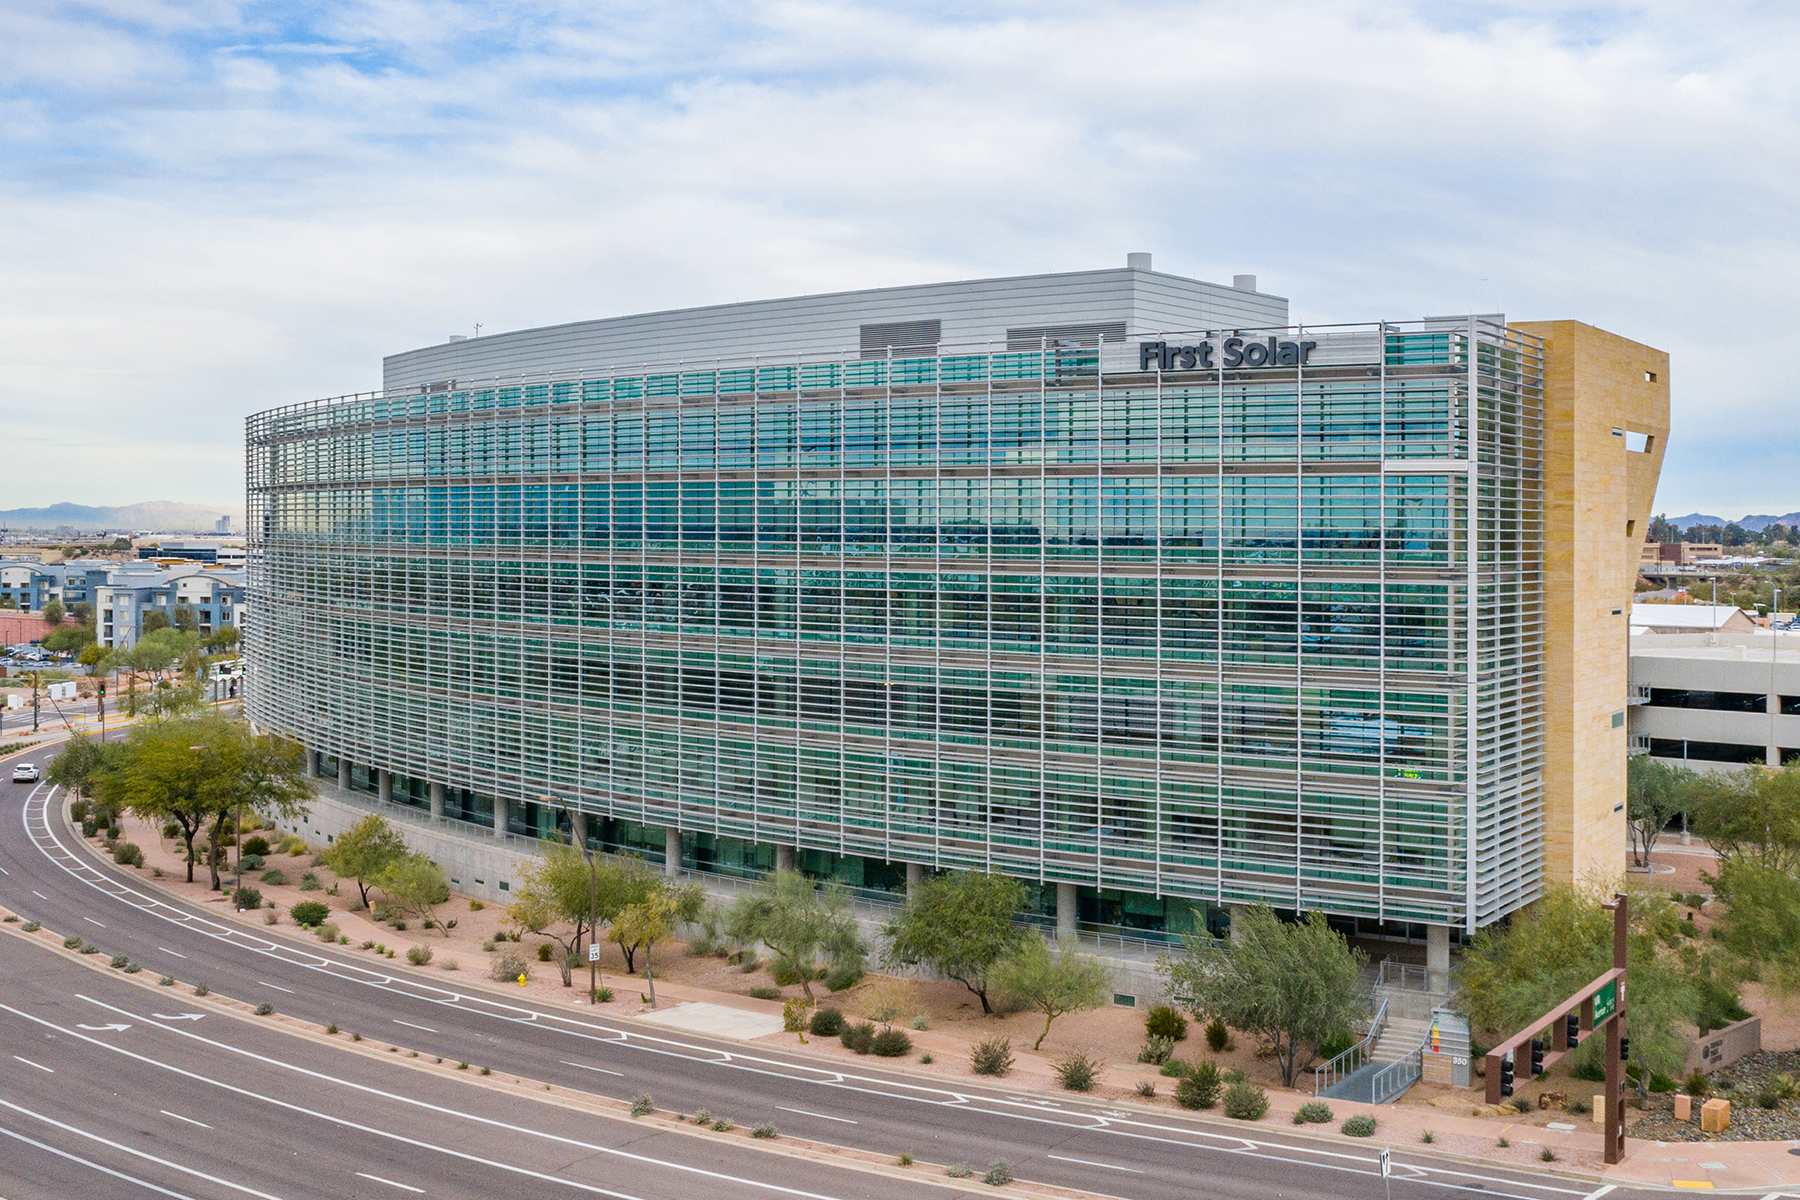 Papago Gateway Center's exterior louver system offers protection from heat and sun. (John Williams/CoStar)